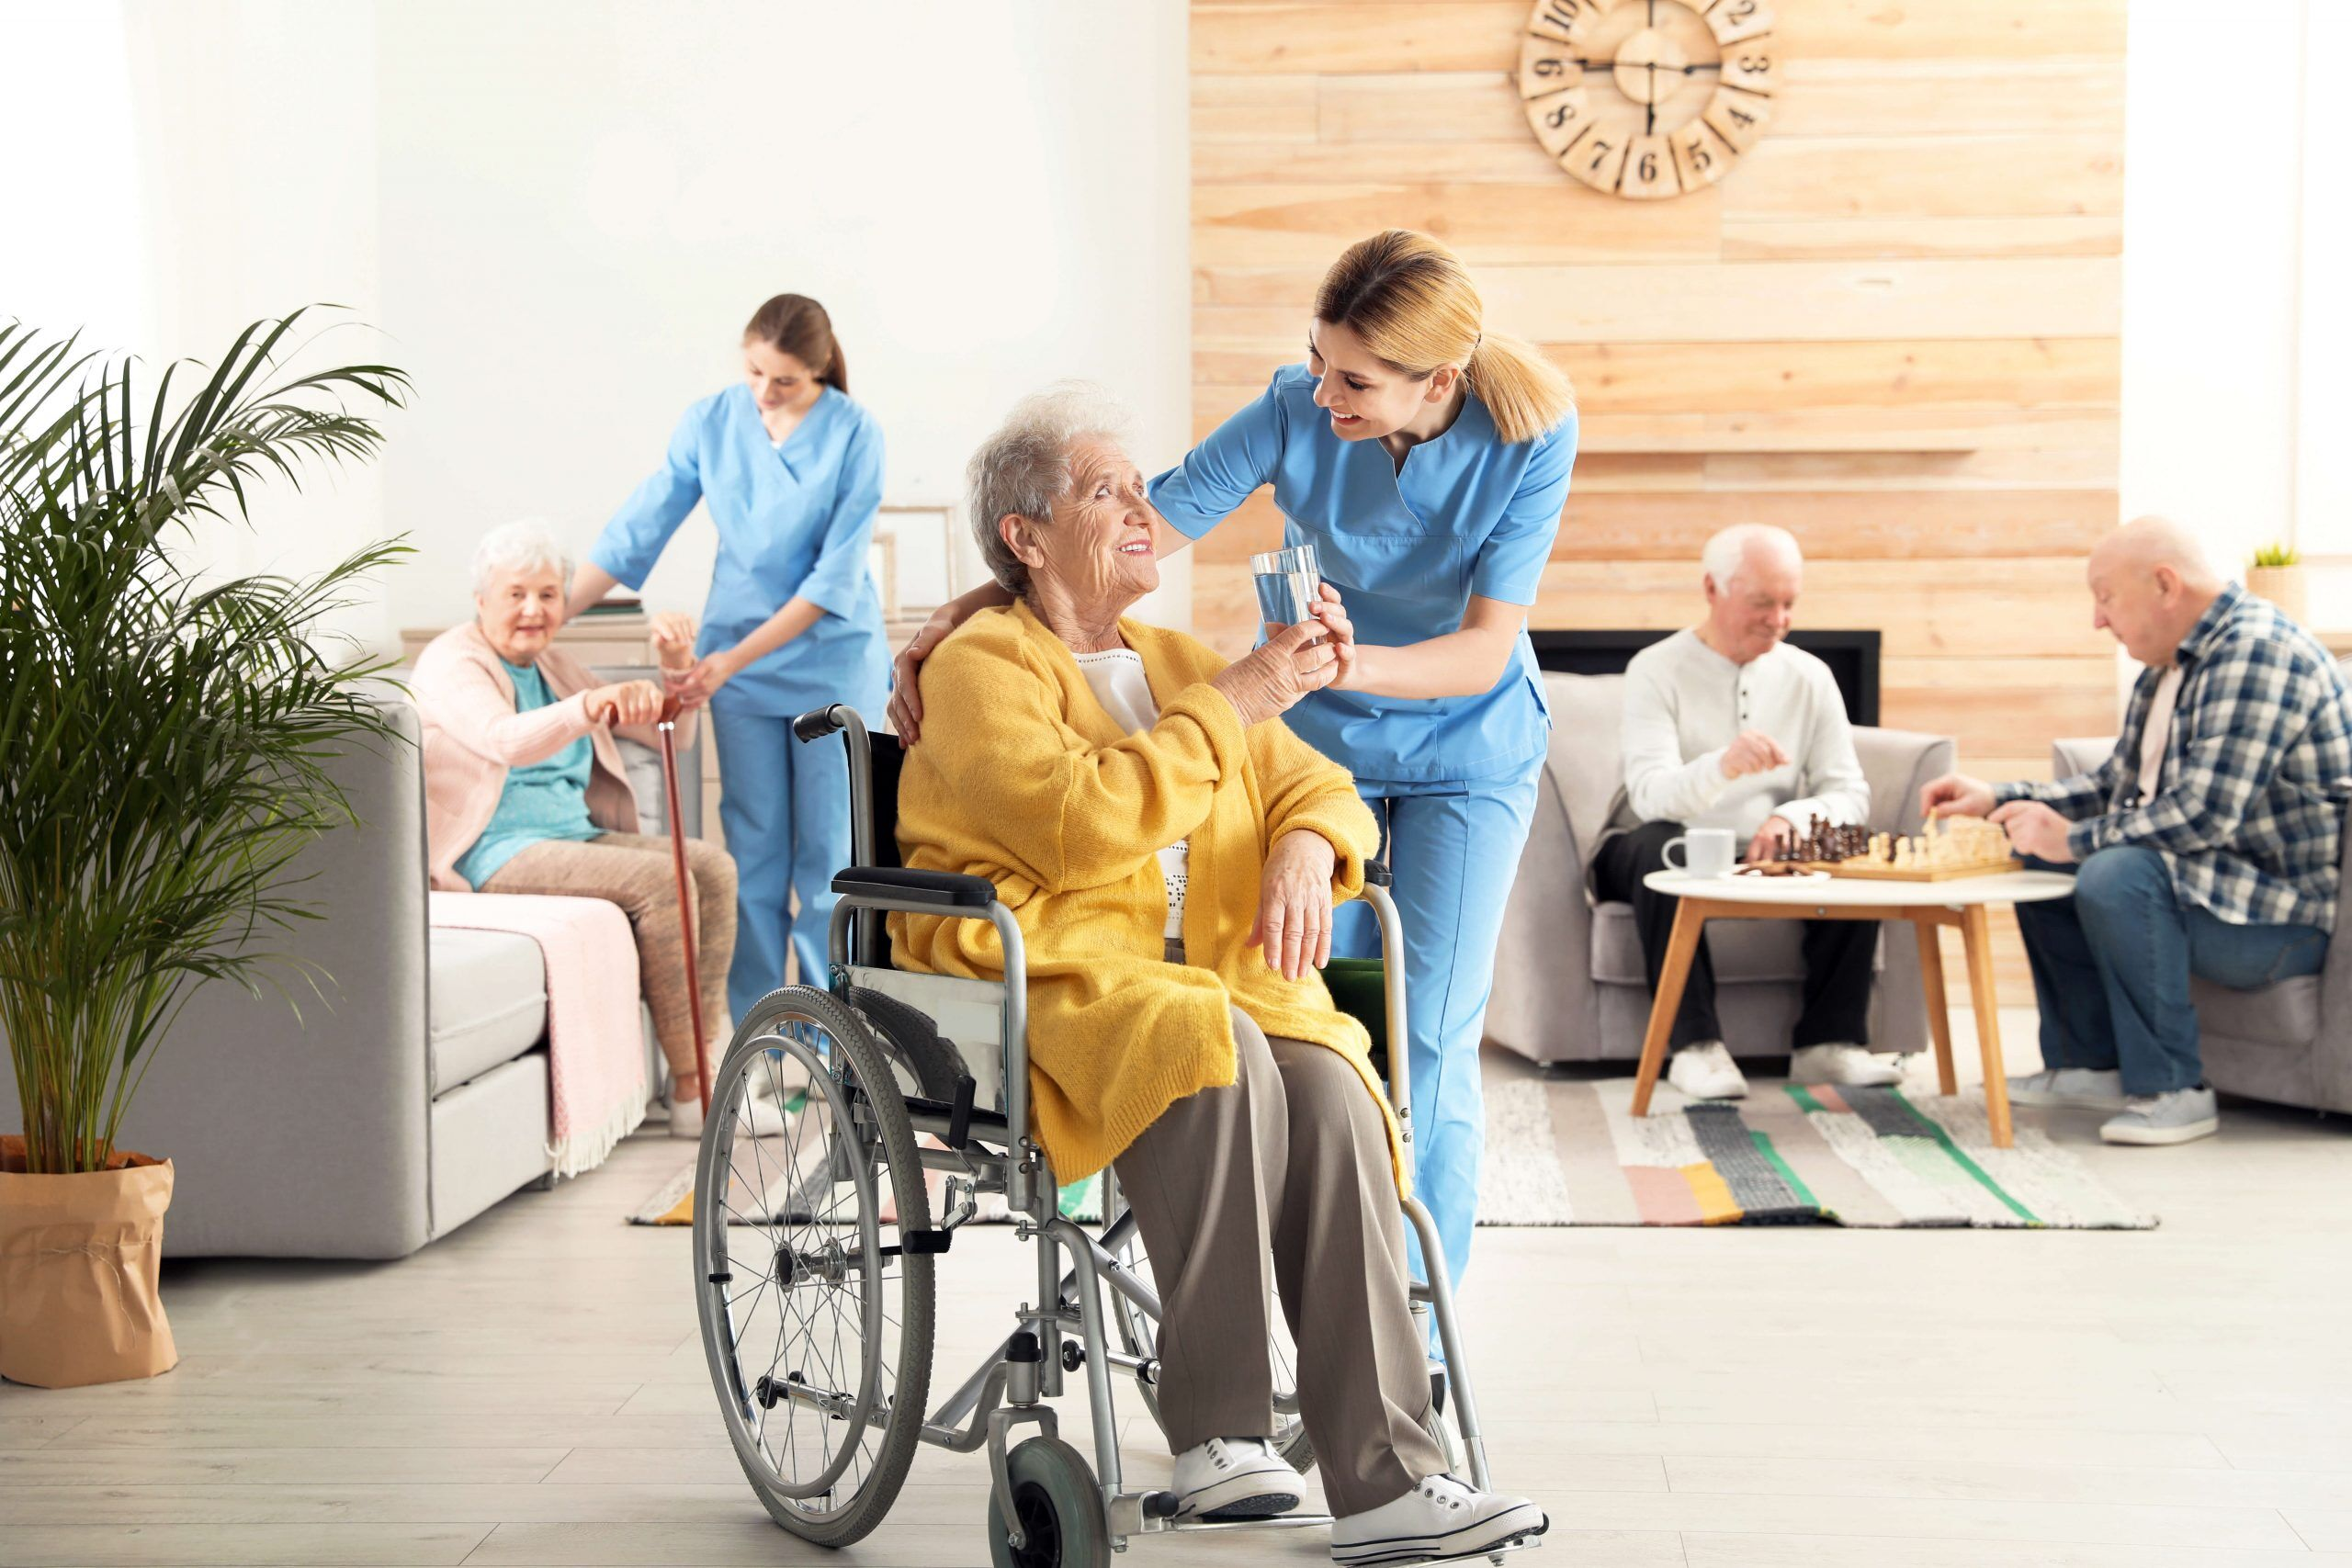 More than ever over-60s are rethinking later-life care plans as an outcome of Covid-19